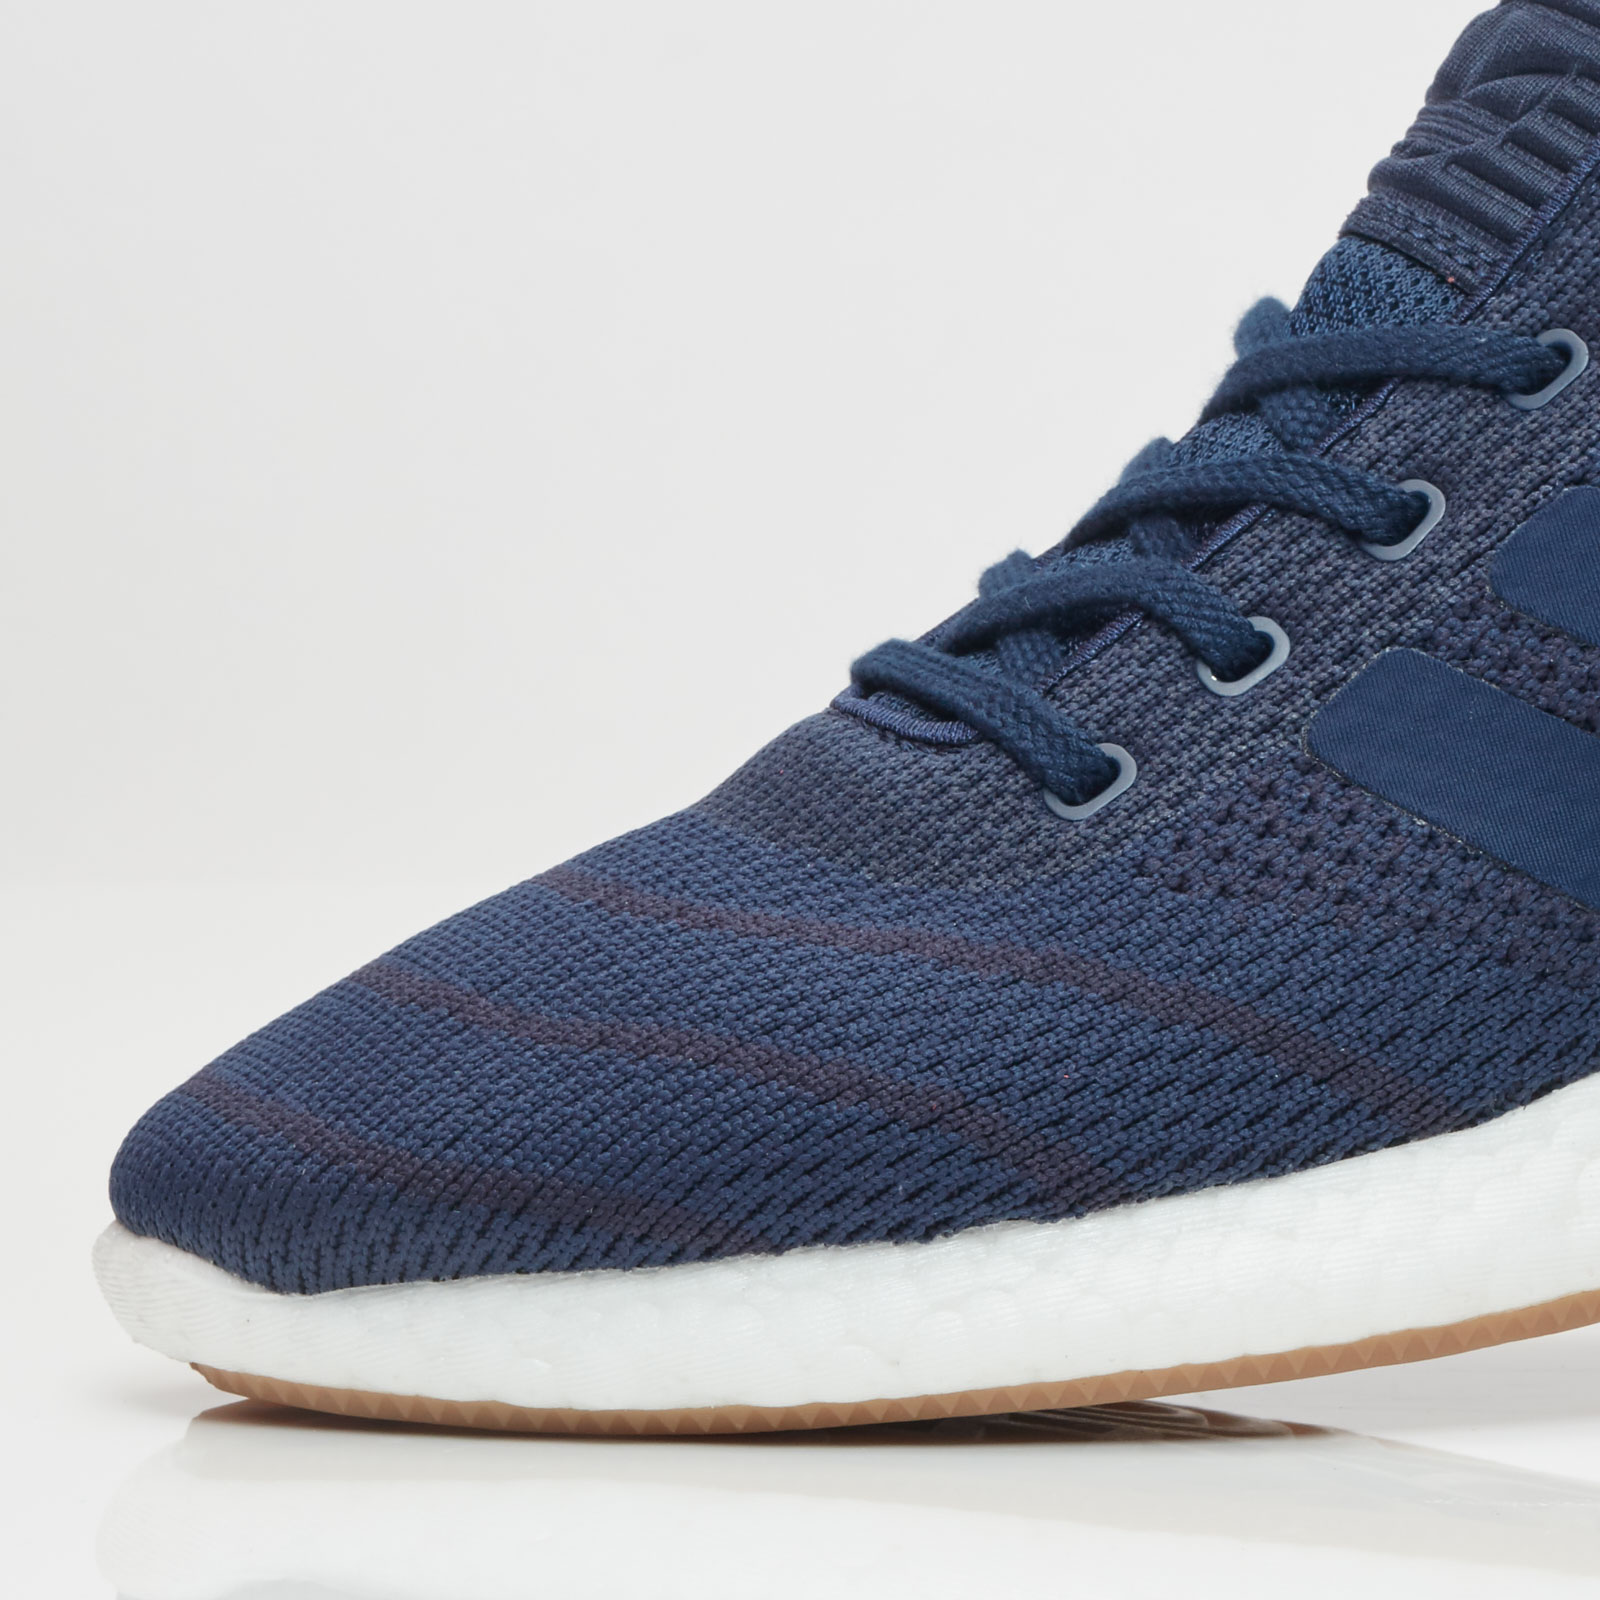 a75374cba adidas Busenitz Pure Boost PK - By4092 - Sneakersnstuff